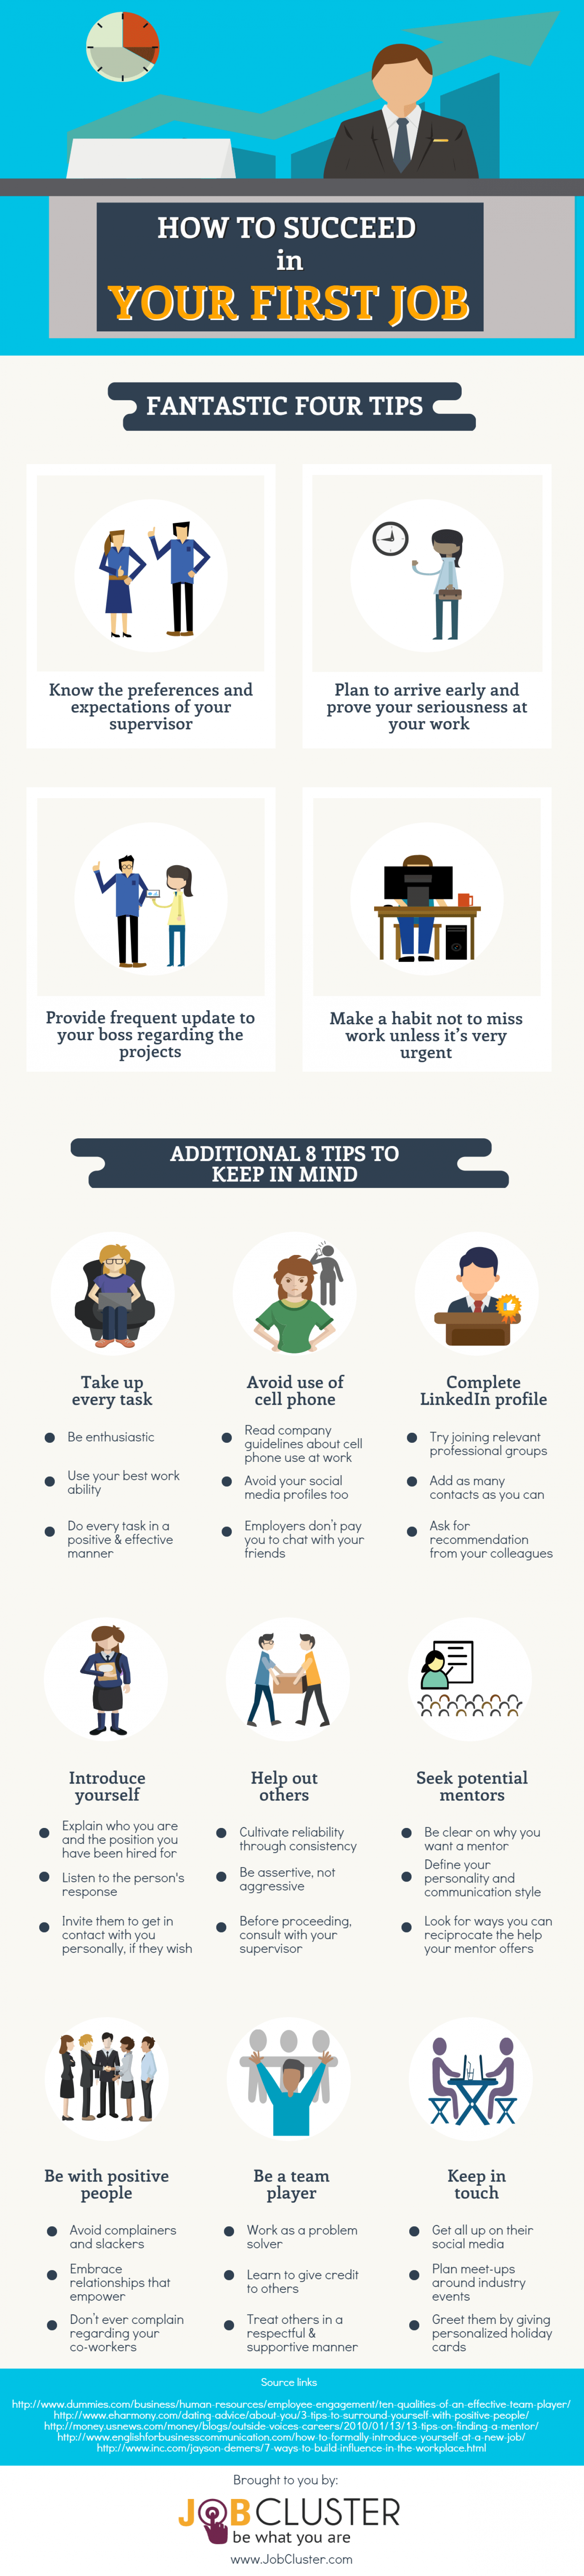 How To Succeed In Your First Job Infographic